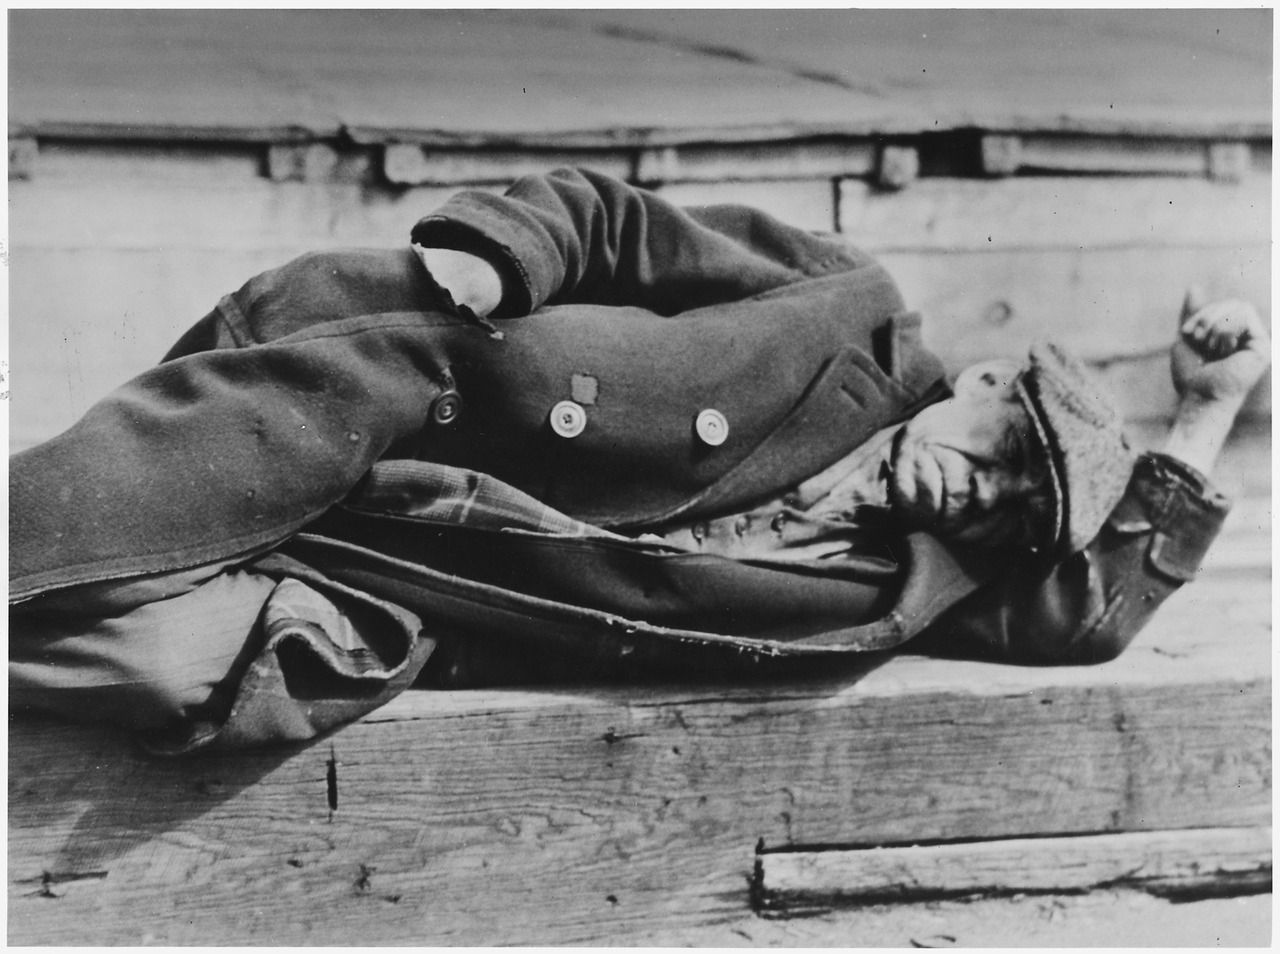 Man laying down at the docks in New York during the Great Depression.